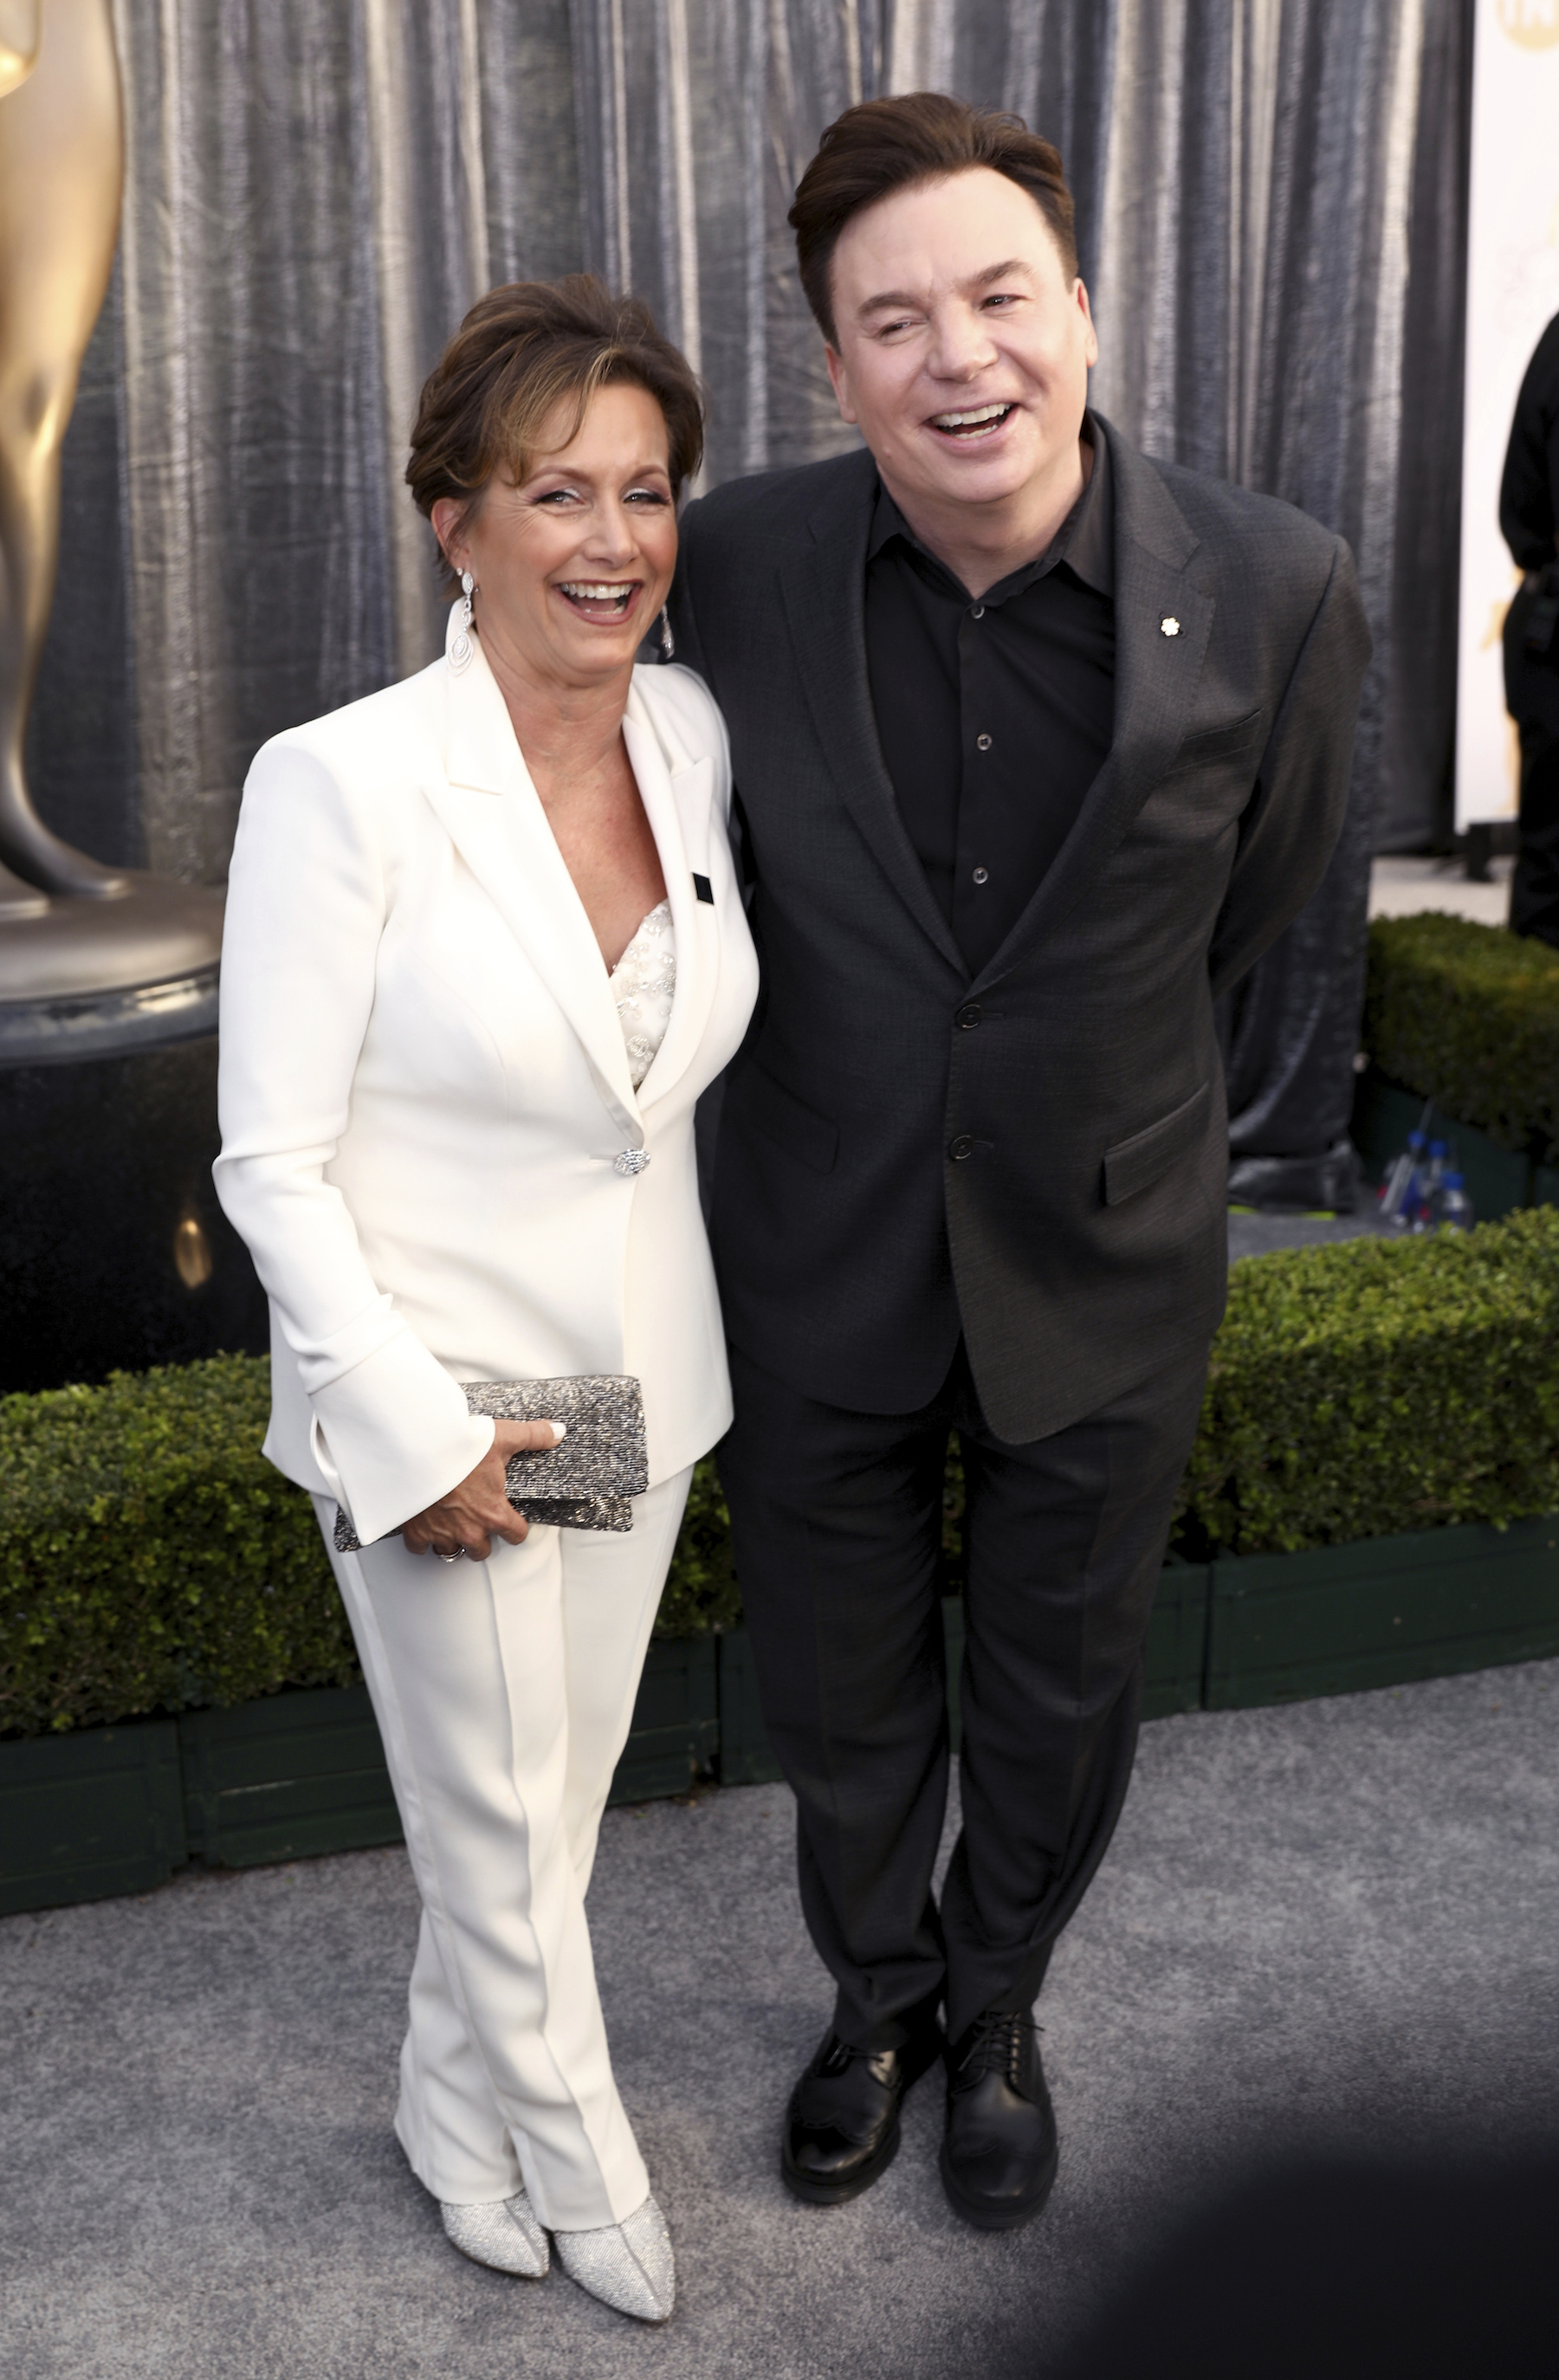 "<div class=""meta image-caption""><div class=""origin-logo origin-image ap""><span>AP</span></div><span class=""caption-text"">Gabrielle Carteris, executive vice president of SAG-AFTRA, left, and Mike Myers arrive at the 25th annual Screen Actors Guild Awards at the Shrine Auditorium & Expo Hall. (Matt Sayles/Invision/AP)</span></div>"